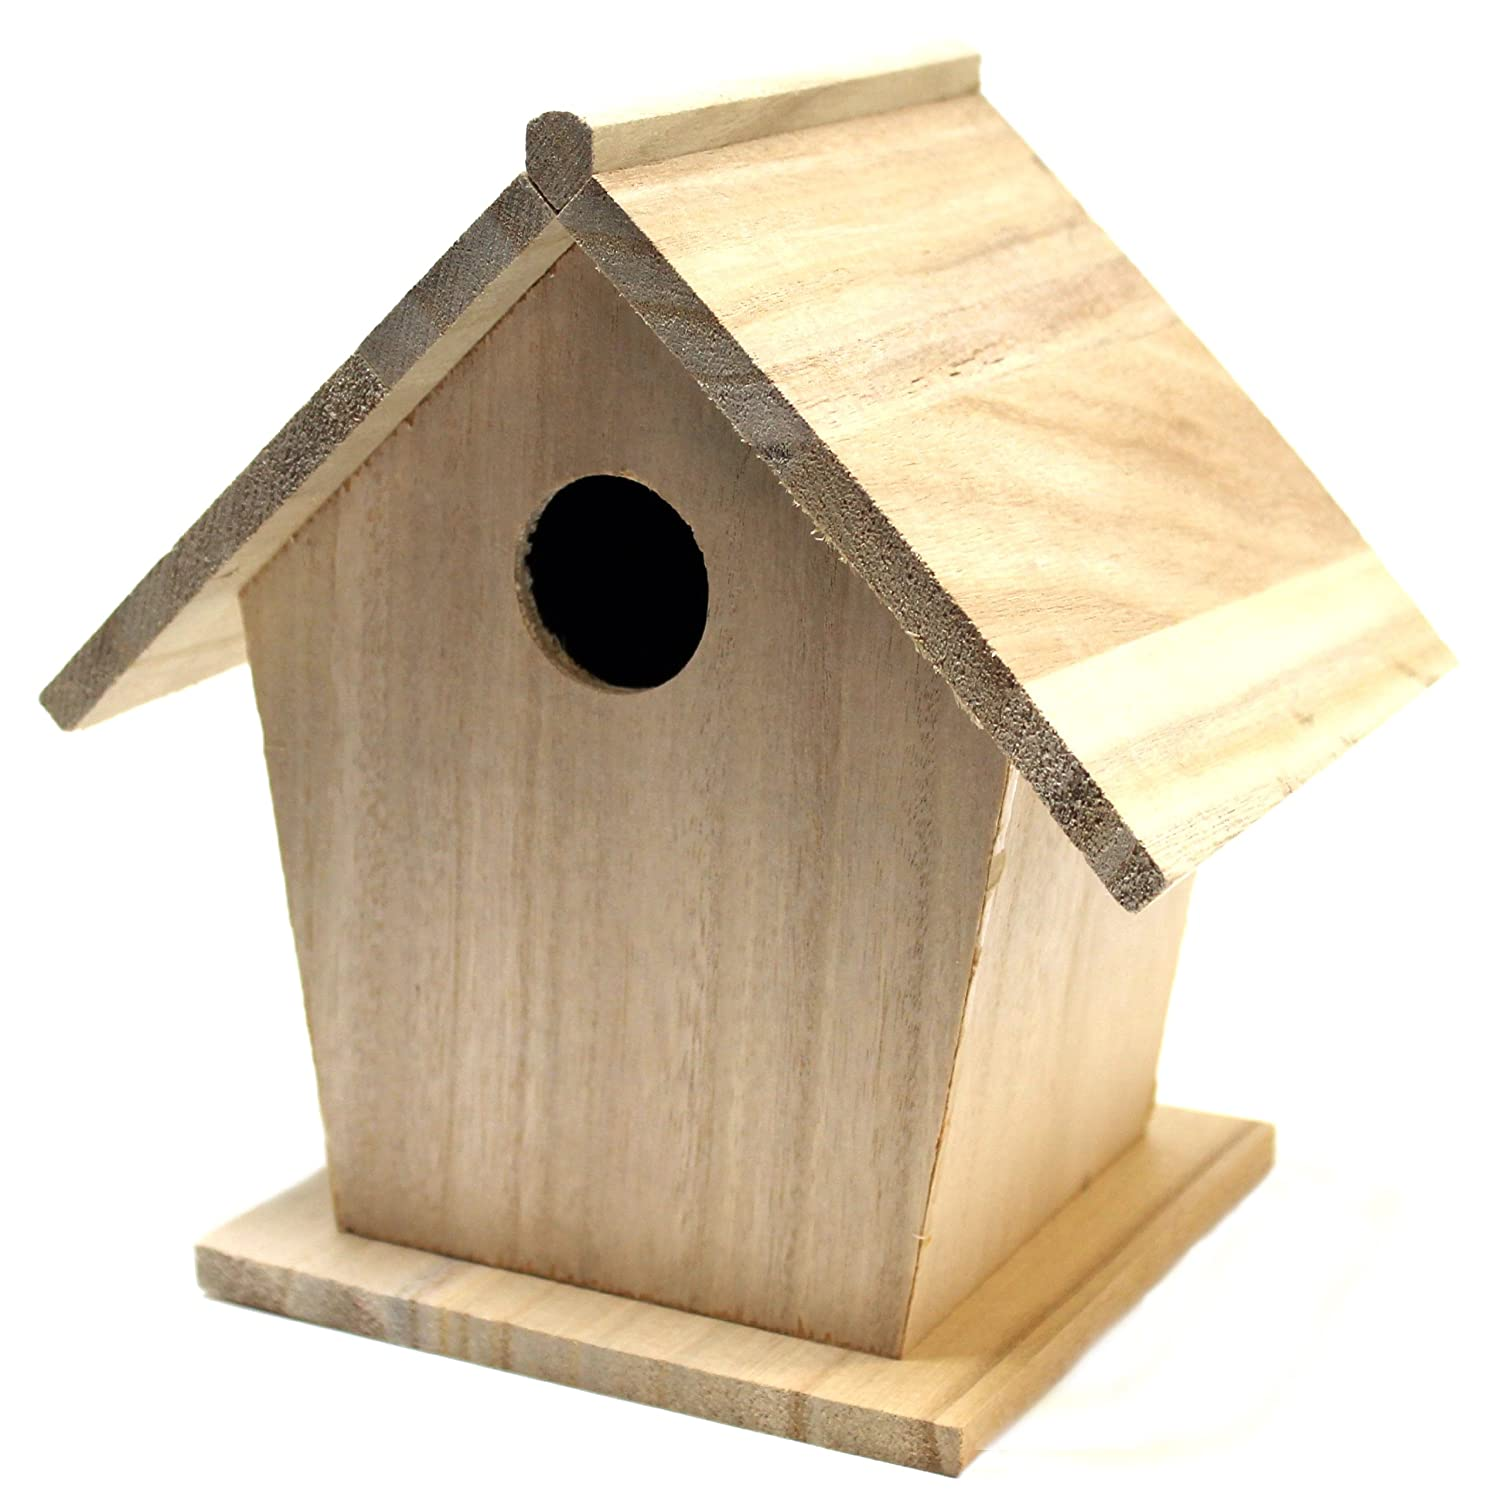 Plaid Wood Surface Birdhouse for Crafting (7 by 7-Inch), 97874 Plaid Inc.